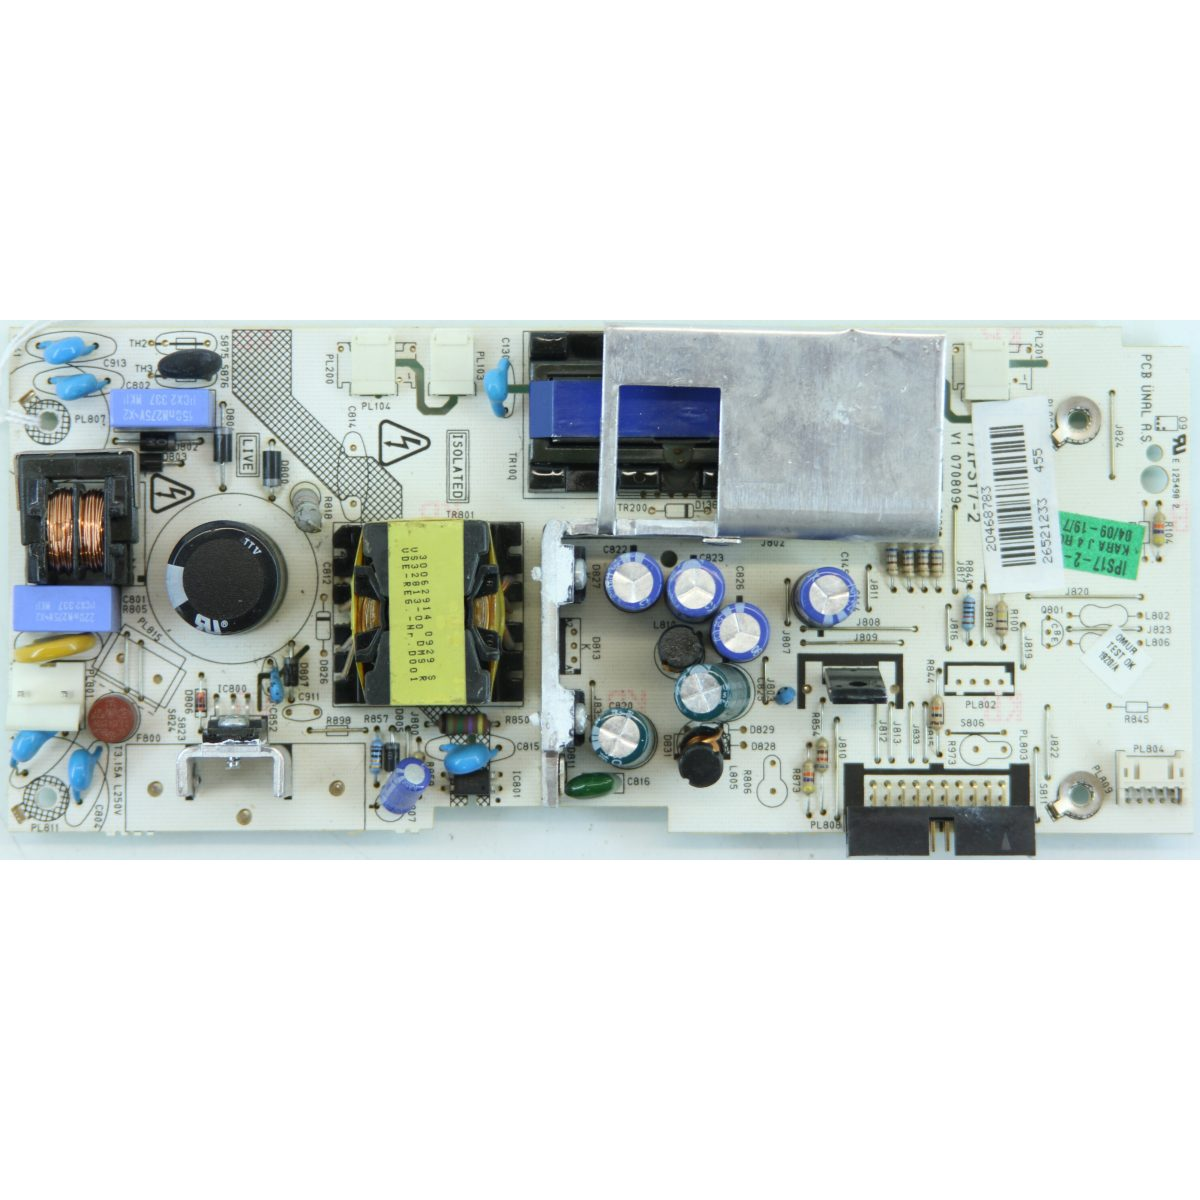 17IPS17-2 ASSY PCB IP BOARD, 17IPS17-2